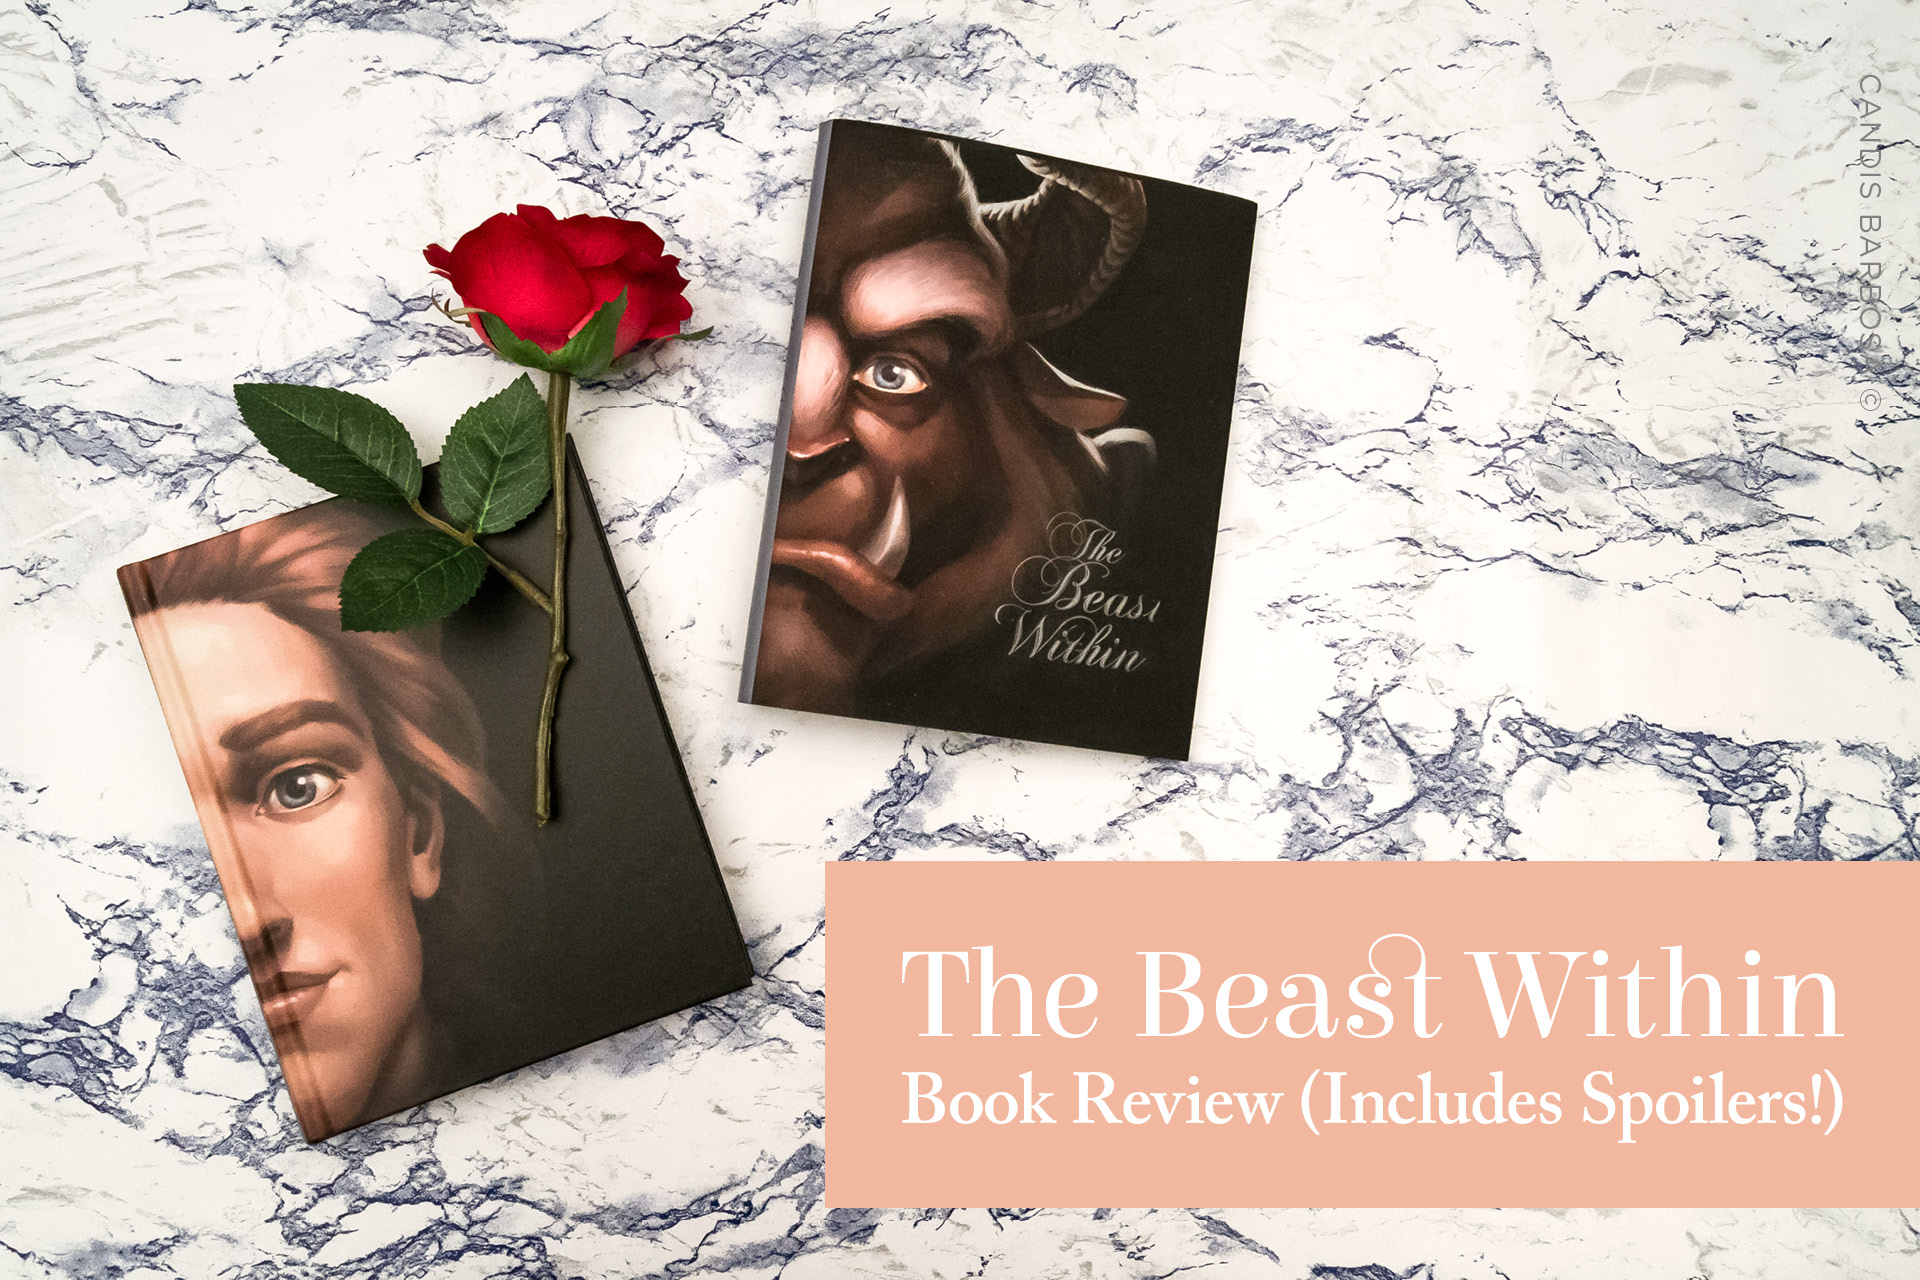 Book Review: The Beast Within by Serena Valentino (Spoilers!)